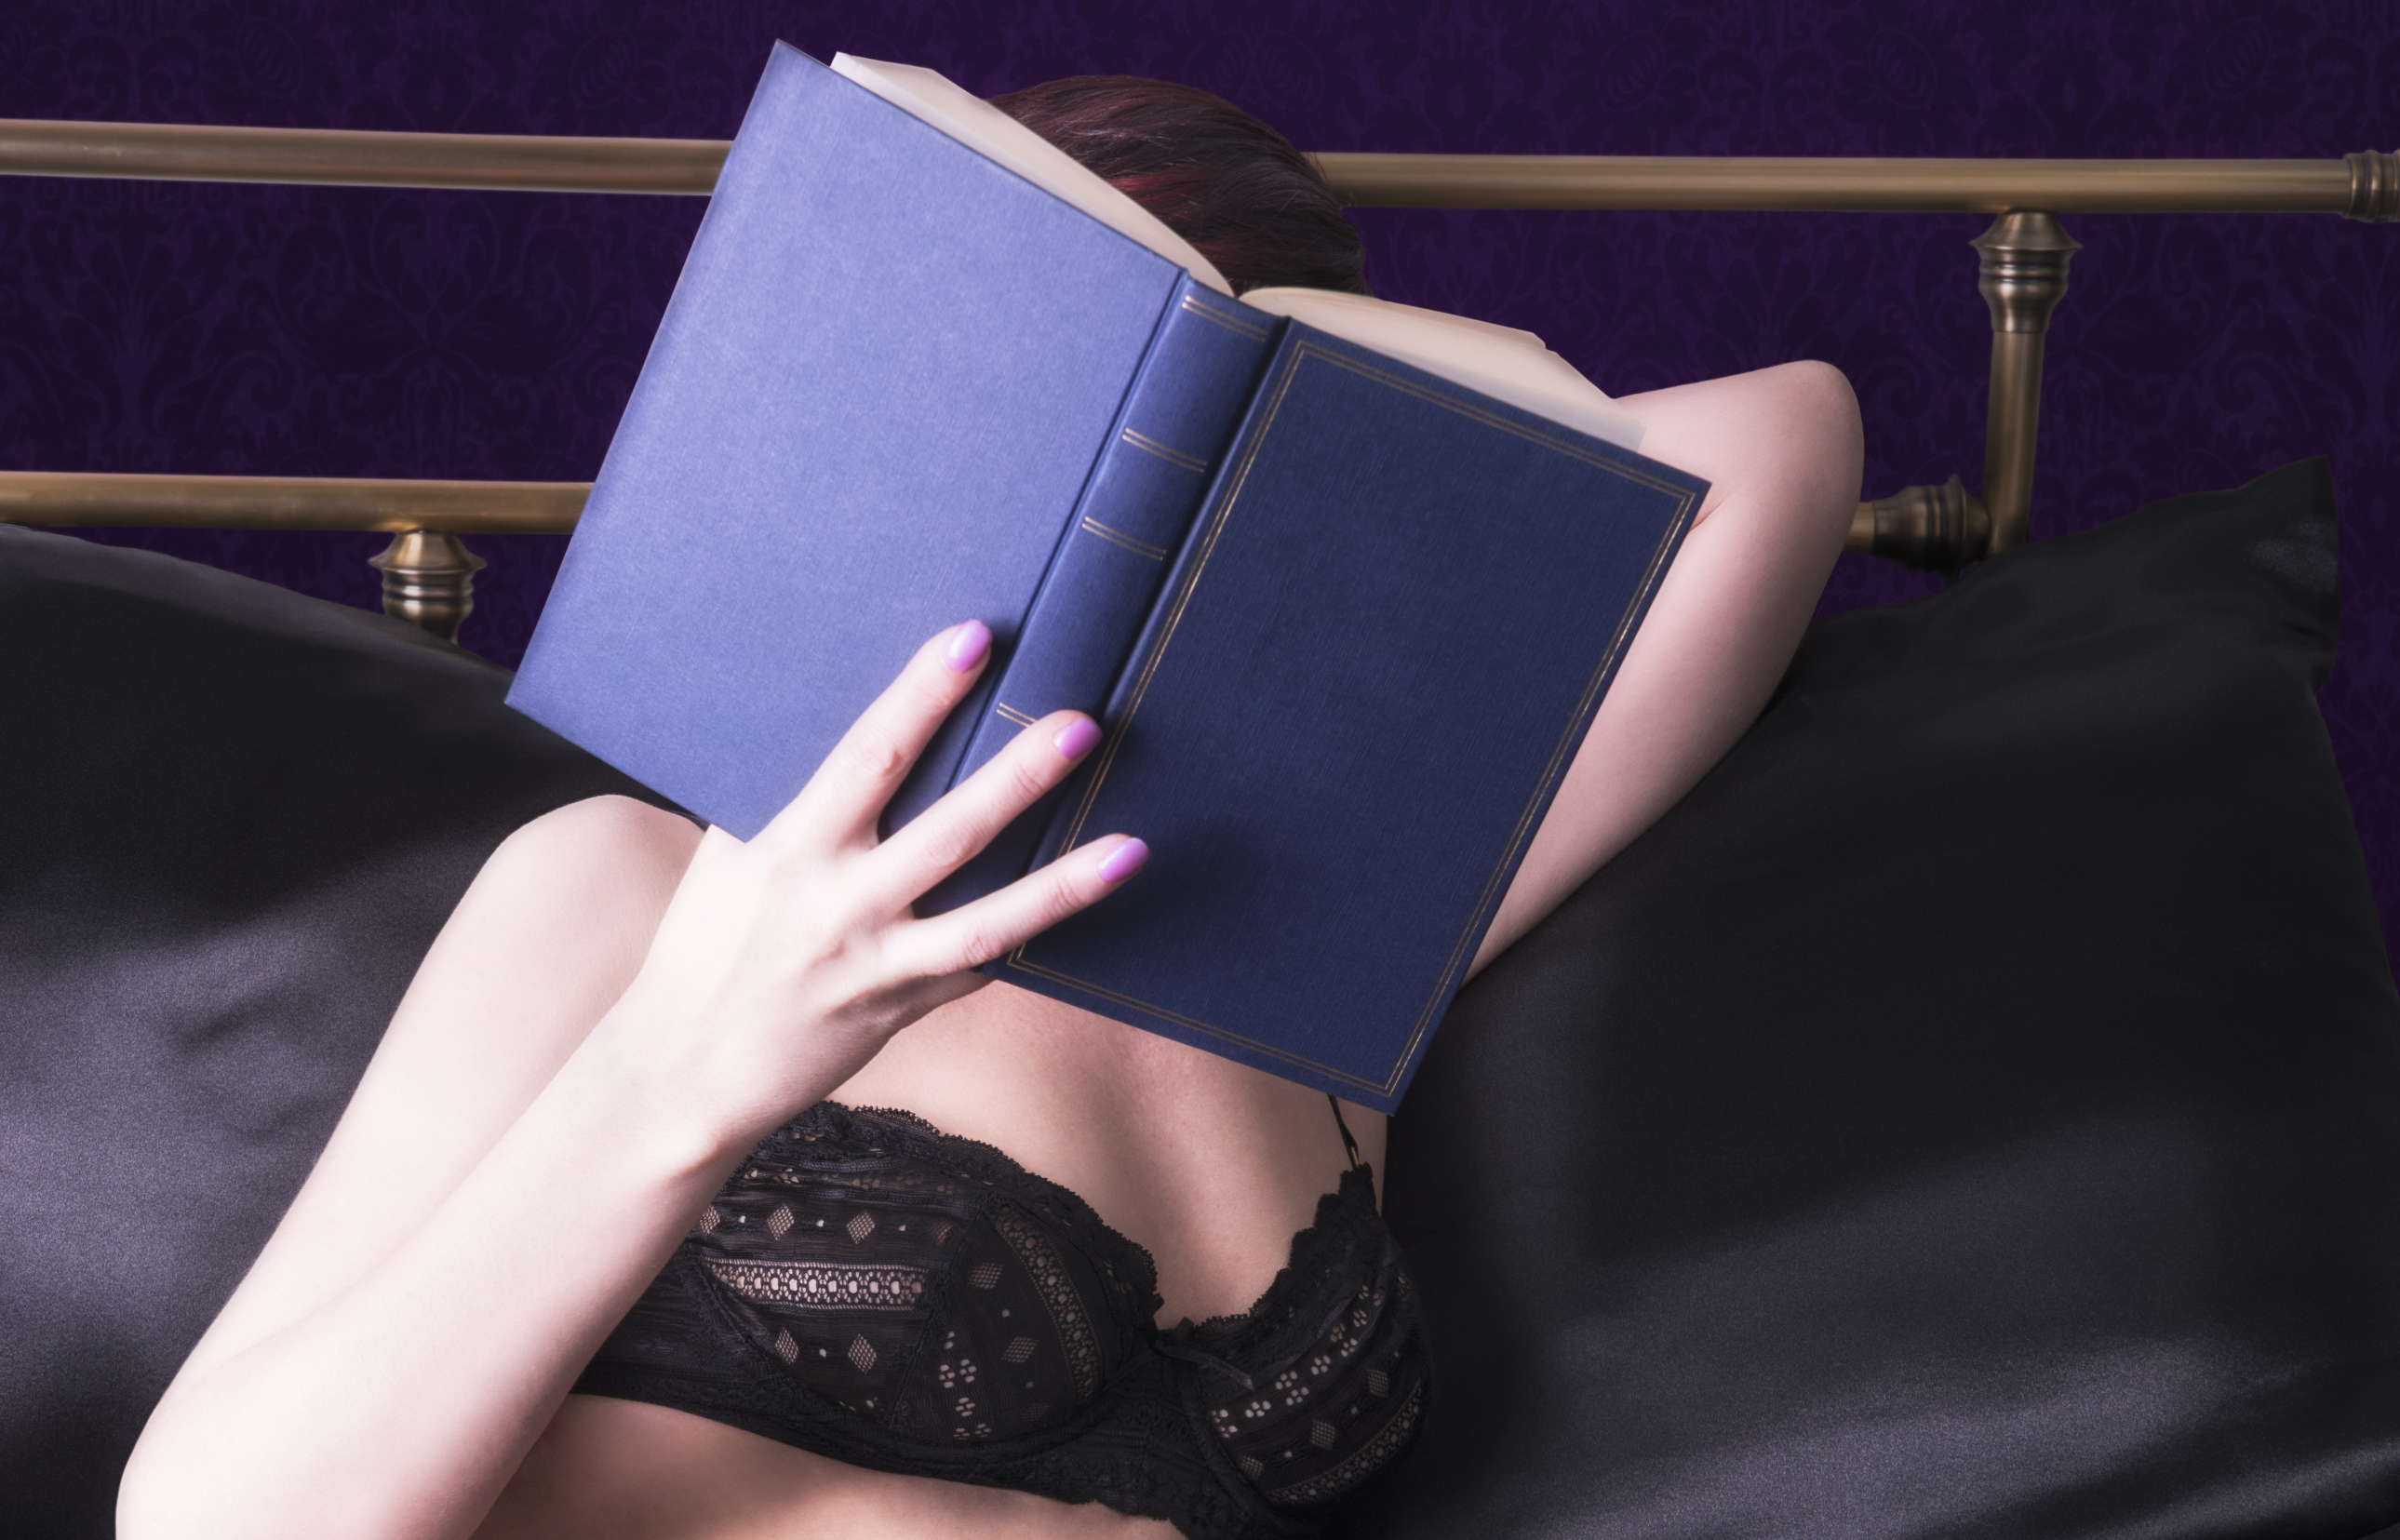 Erotic excerpts from books